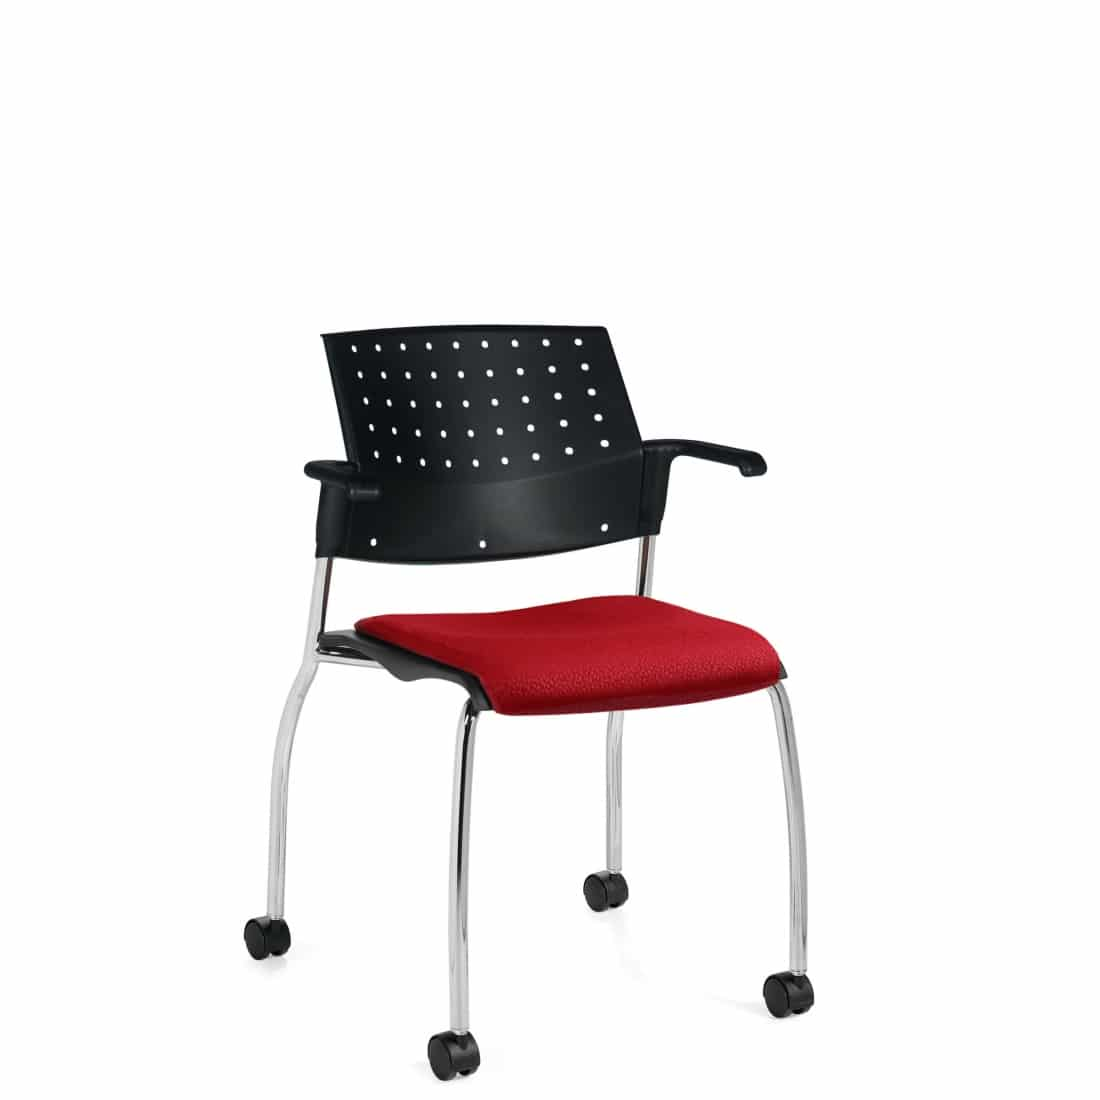 Armchair, Red Upholstered Seat & Black Polypropylene Back, Casters And Chrome Frame (6574)